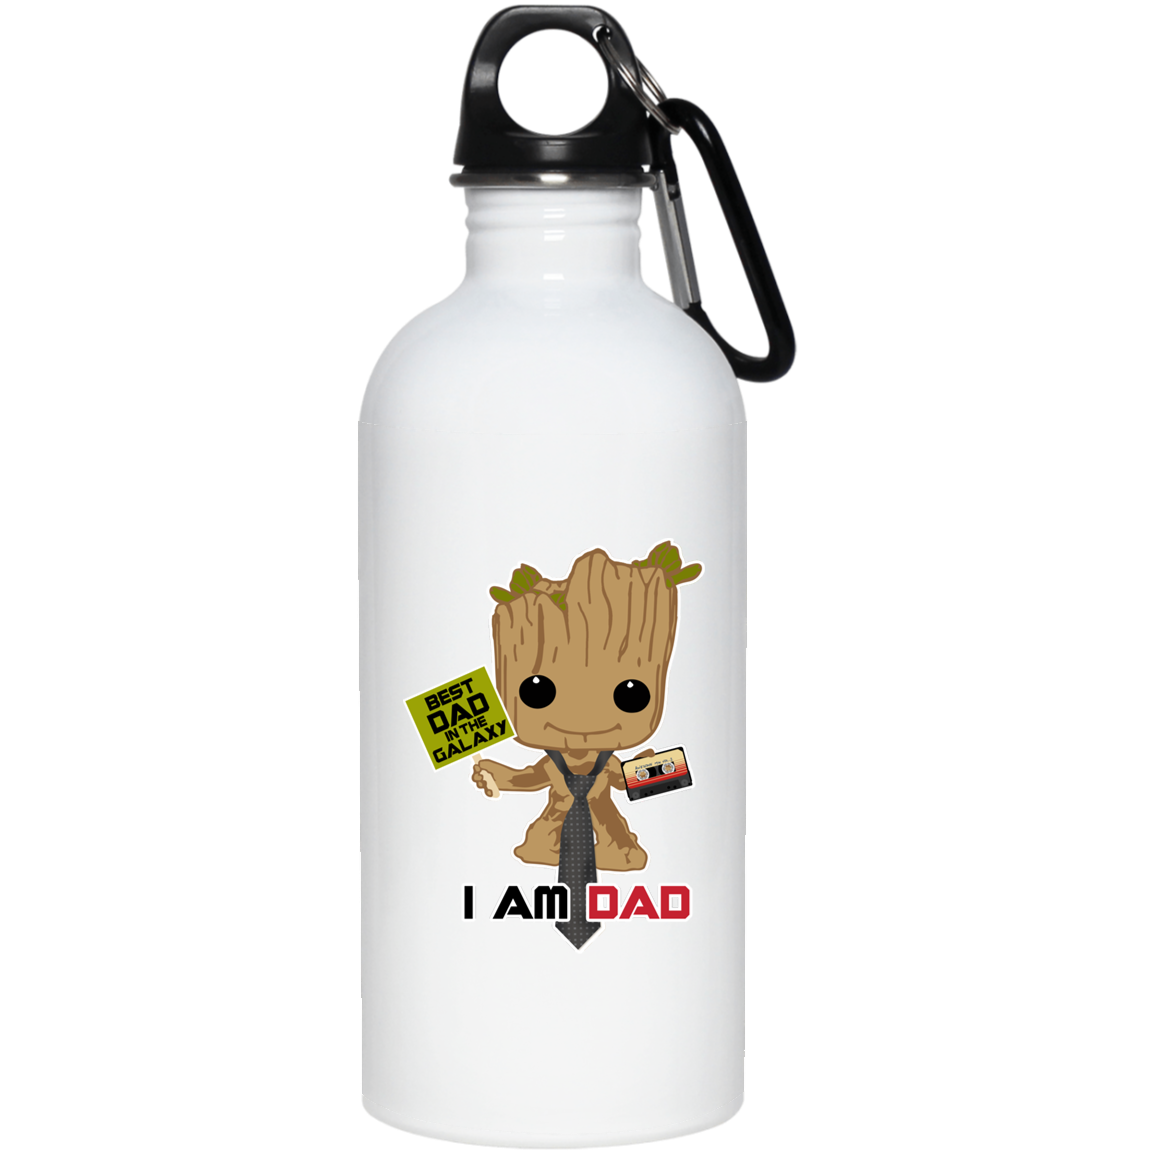 I Am Dad - 20 oz. Stainless Steel Water Bottle